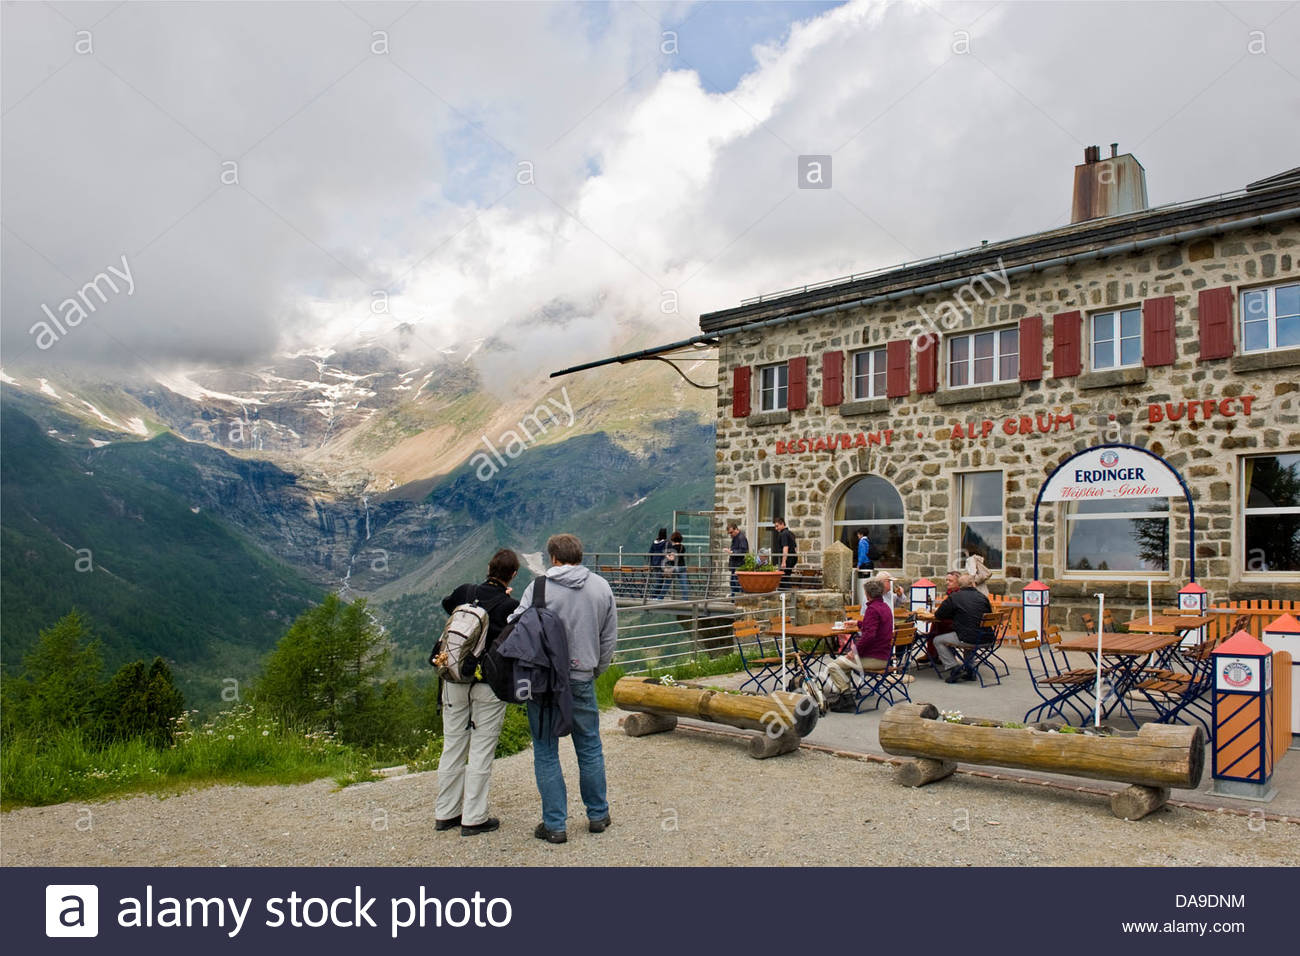 Switzerland,Canton Grisons,Bernina express,Alp Grum resort - Stock Image